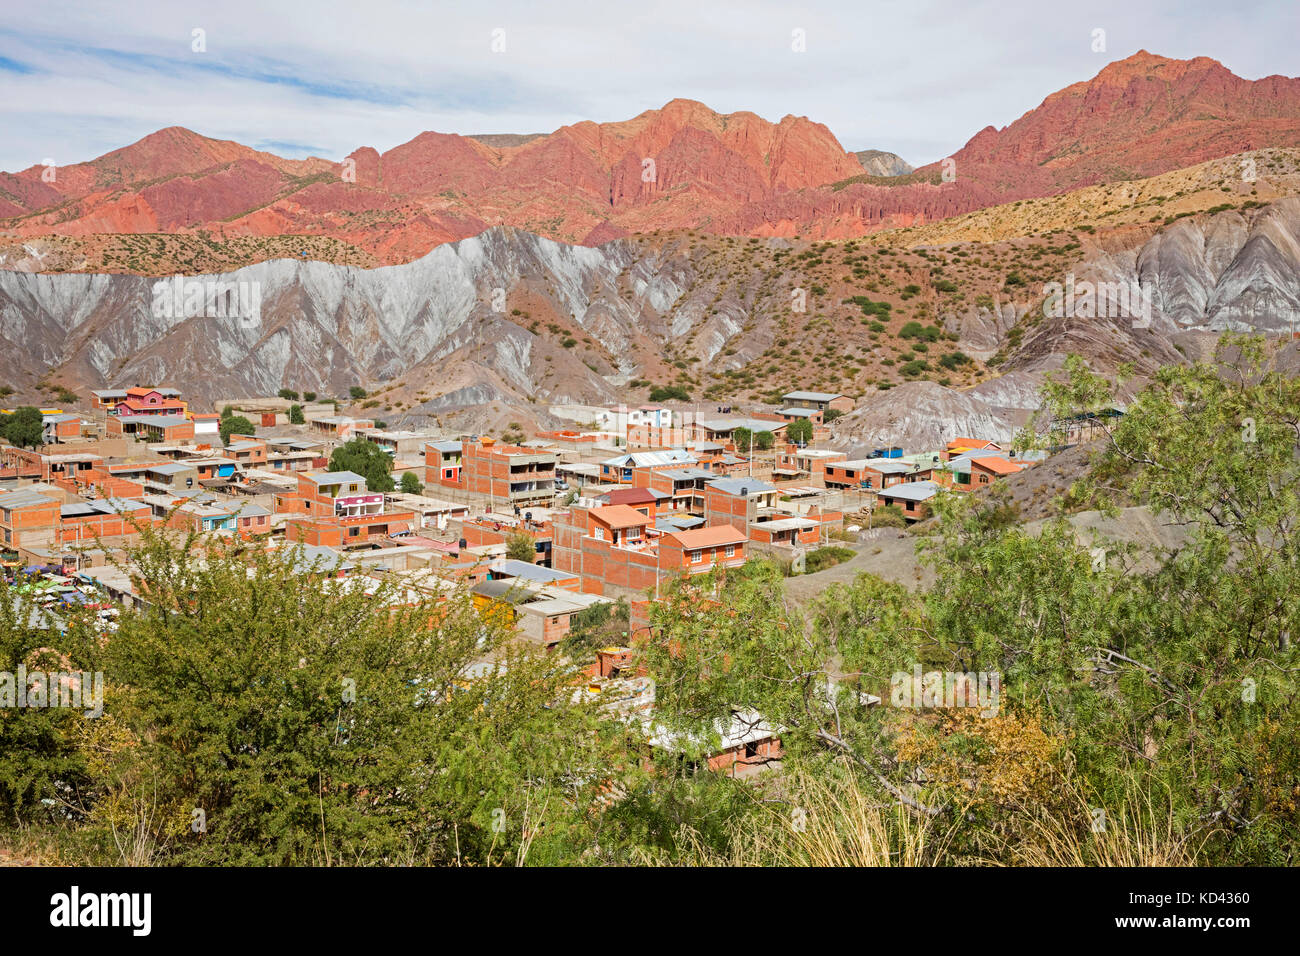 Aerial view over Tupiza, capital city of the Sud Chichas Province within the Potosí Department, Bolivia - Stock Image